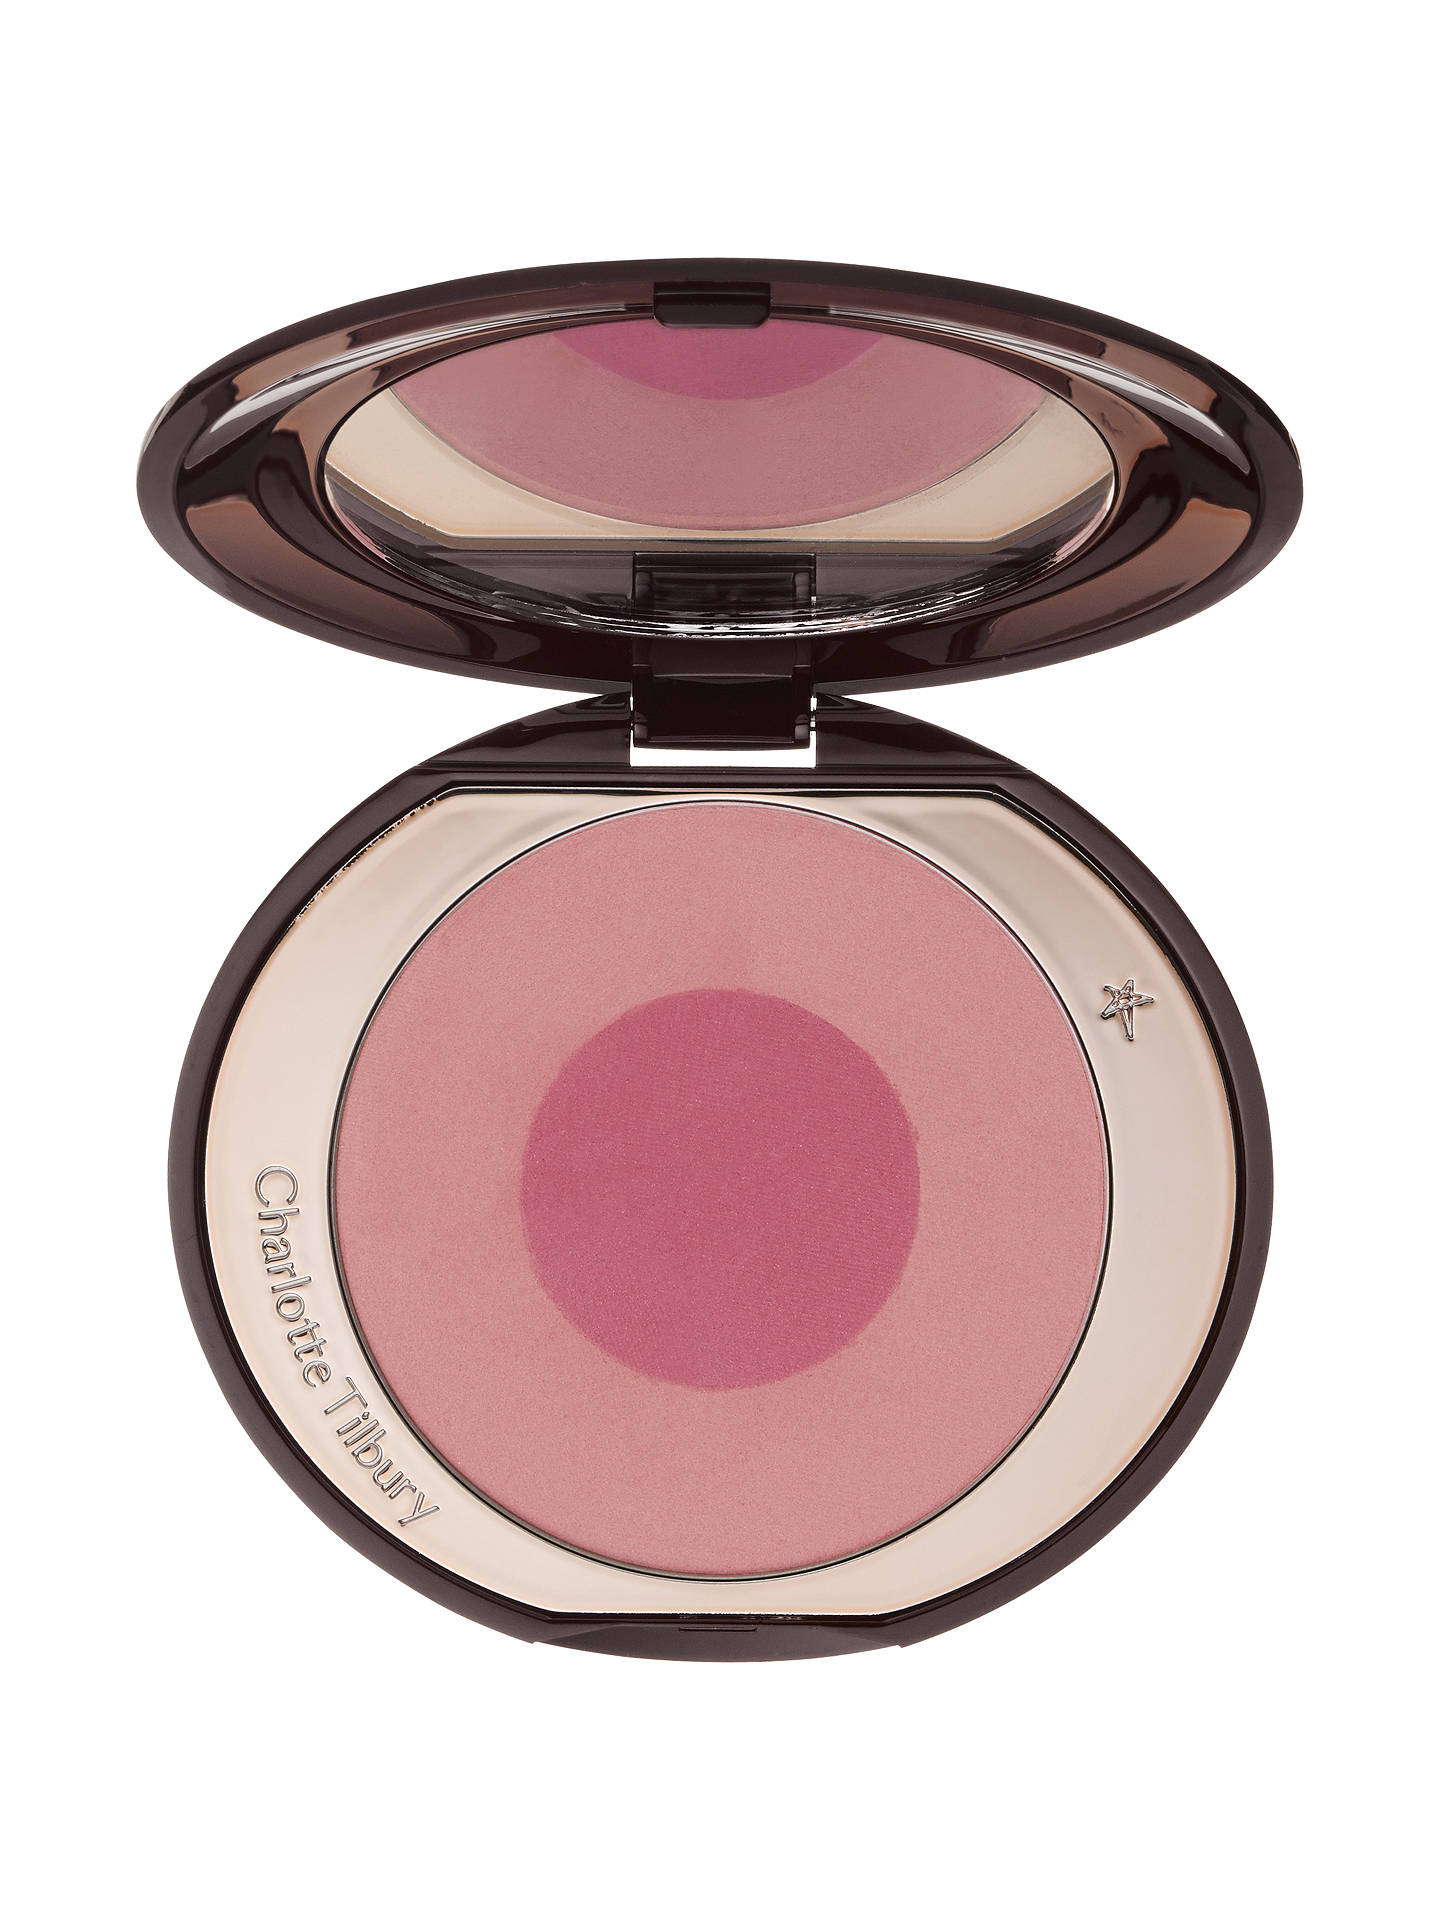 BuyCharlotte Tilbury Cheek to Chic Blusher, Love Is The Drug Online at johnlewis.com